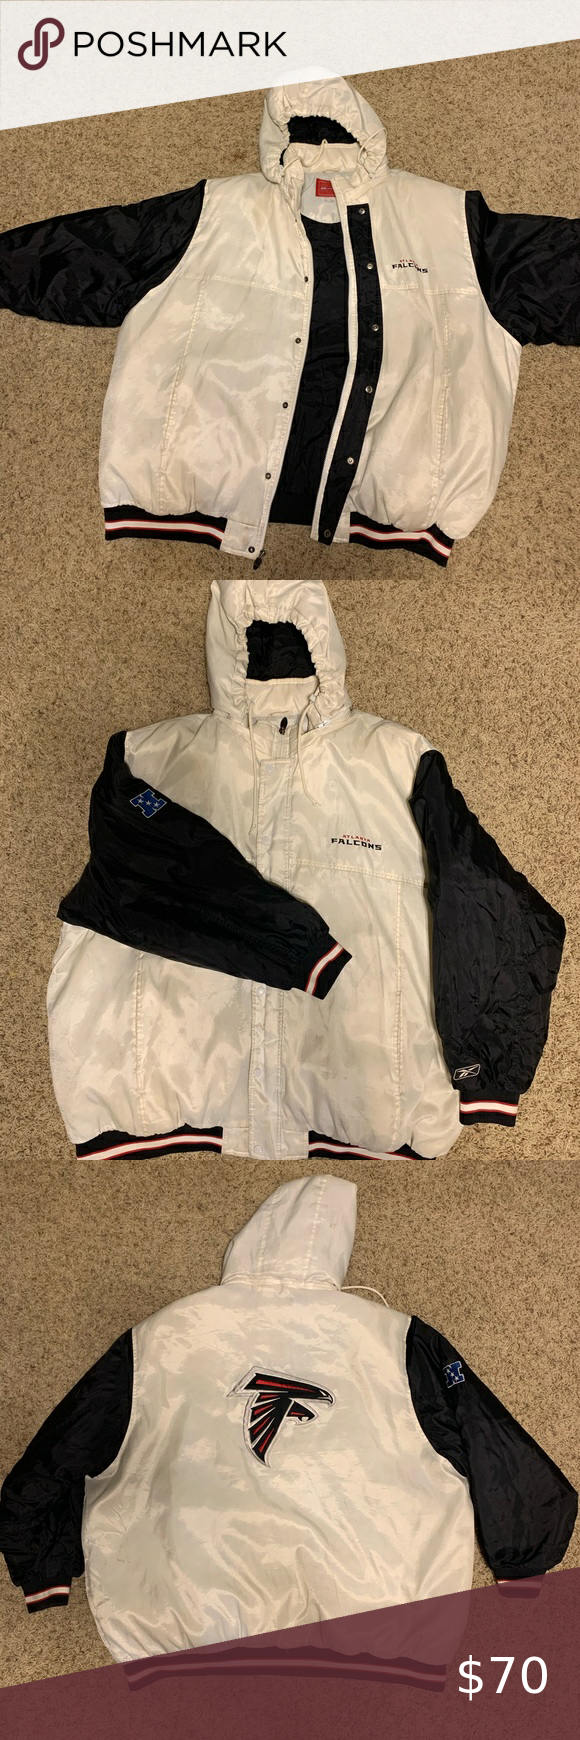 Vintage Atlanta Falcons Reebok Puffer Jacket Size 3xl White Is Partly Faded And Some Stains Here And There Just From Time Remo Puffer Jackets Jackets Reebok [ 1740 x 580 Pixel ]